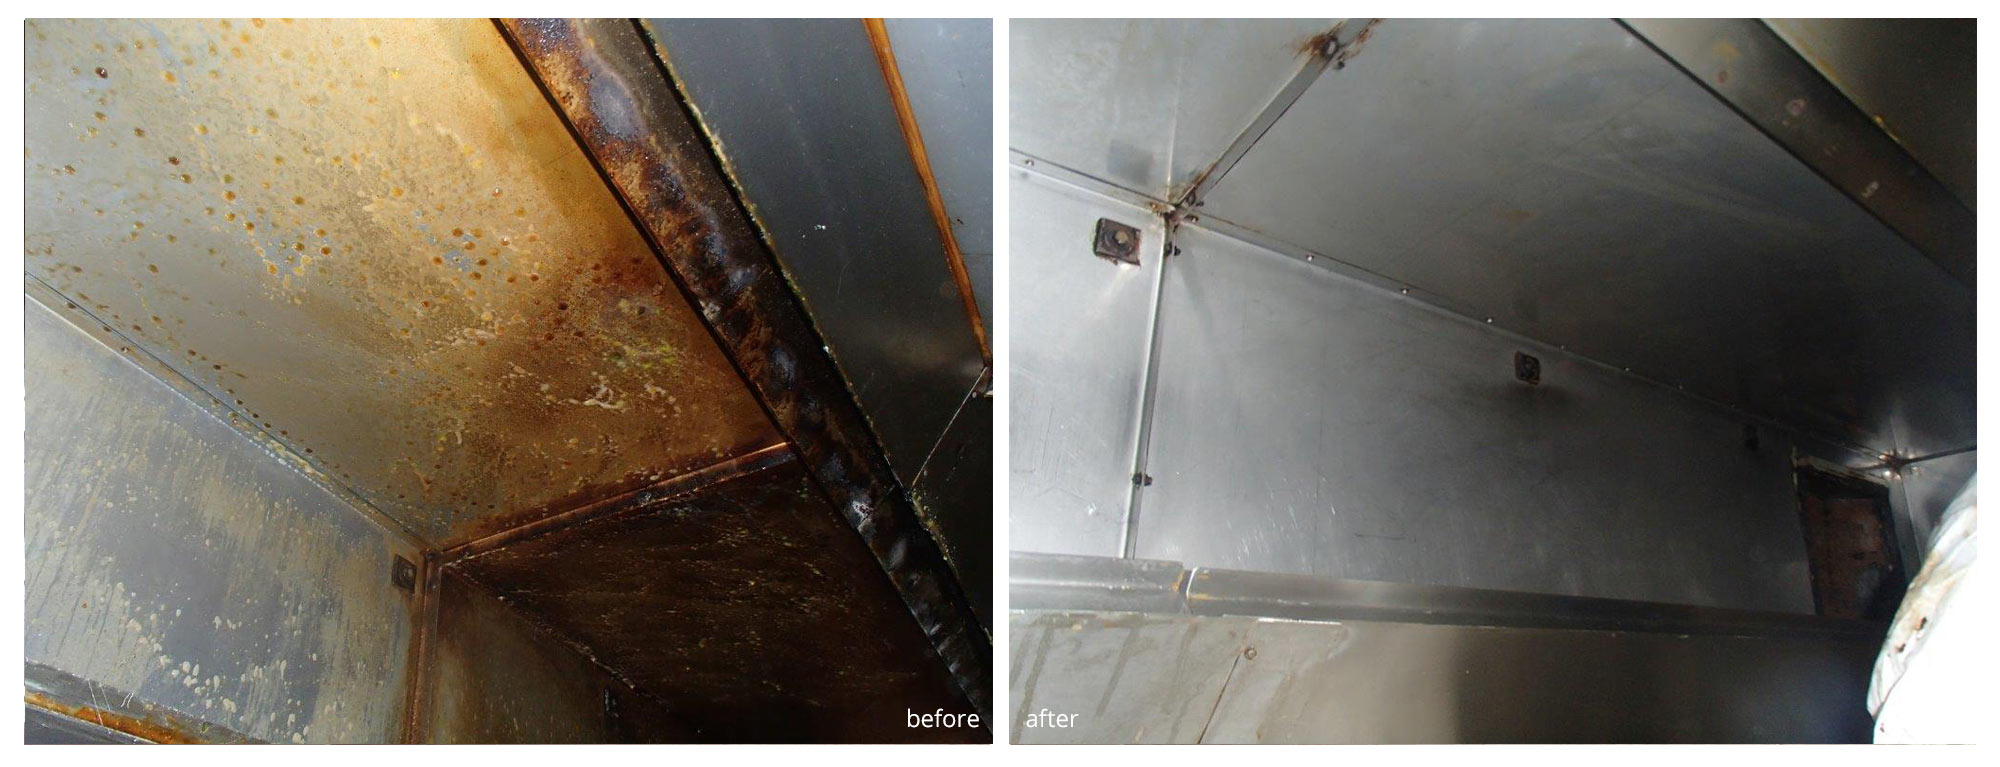 Duct-Cleaning-Before-and-After-2-